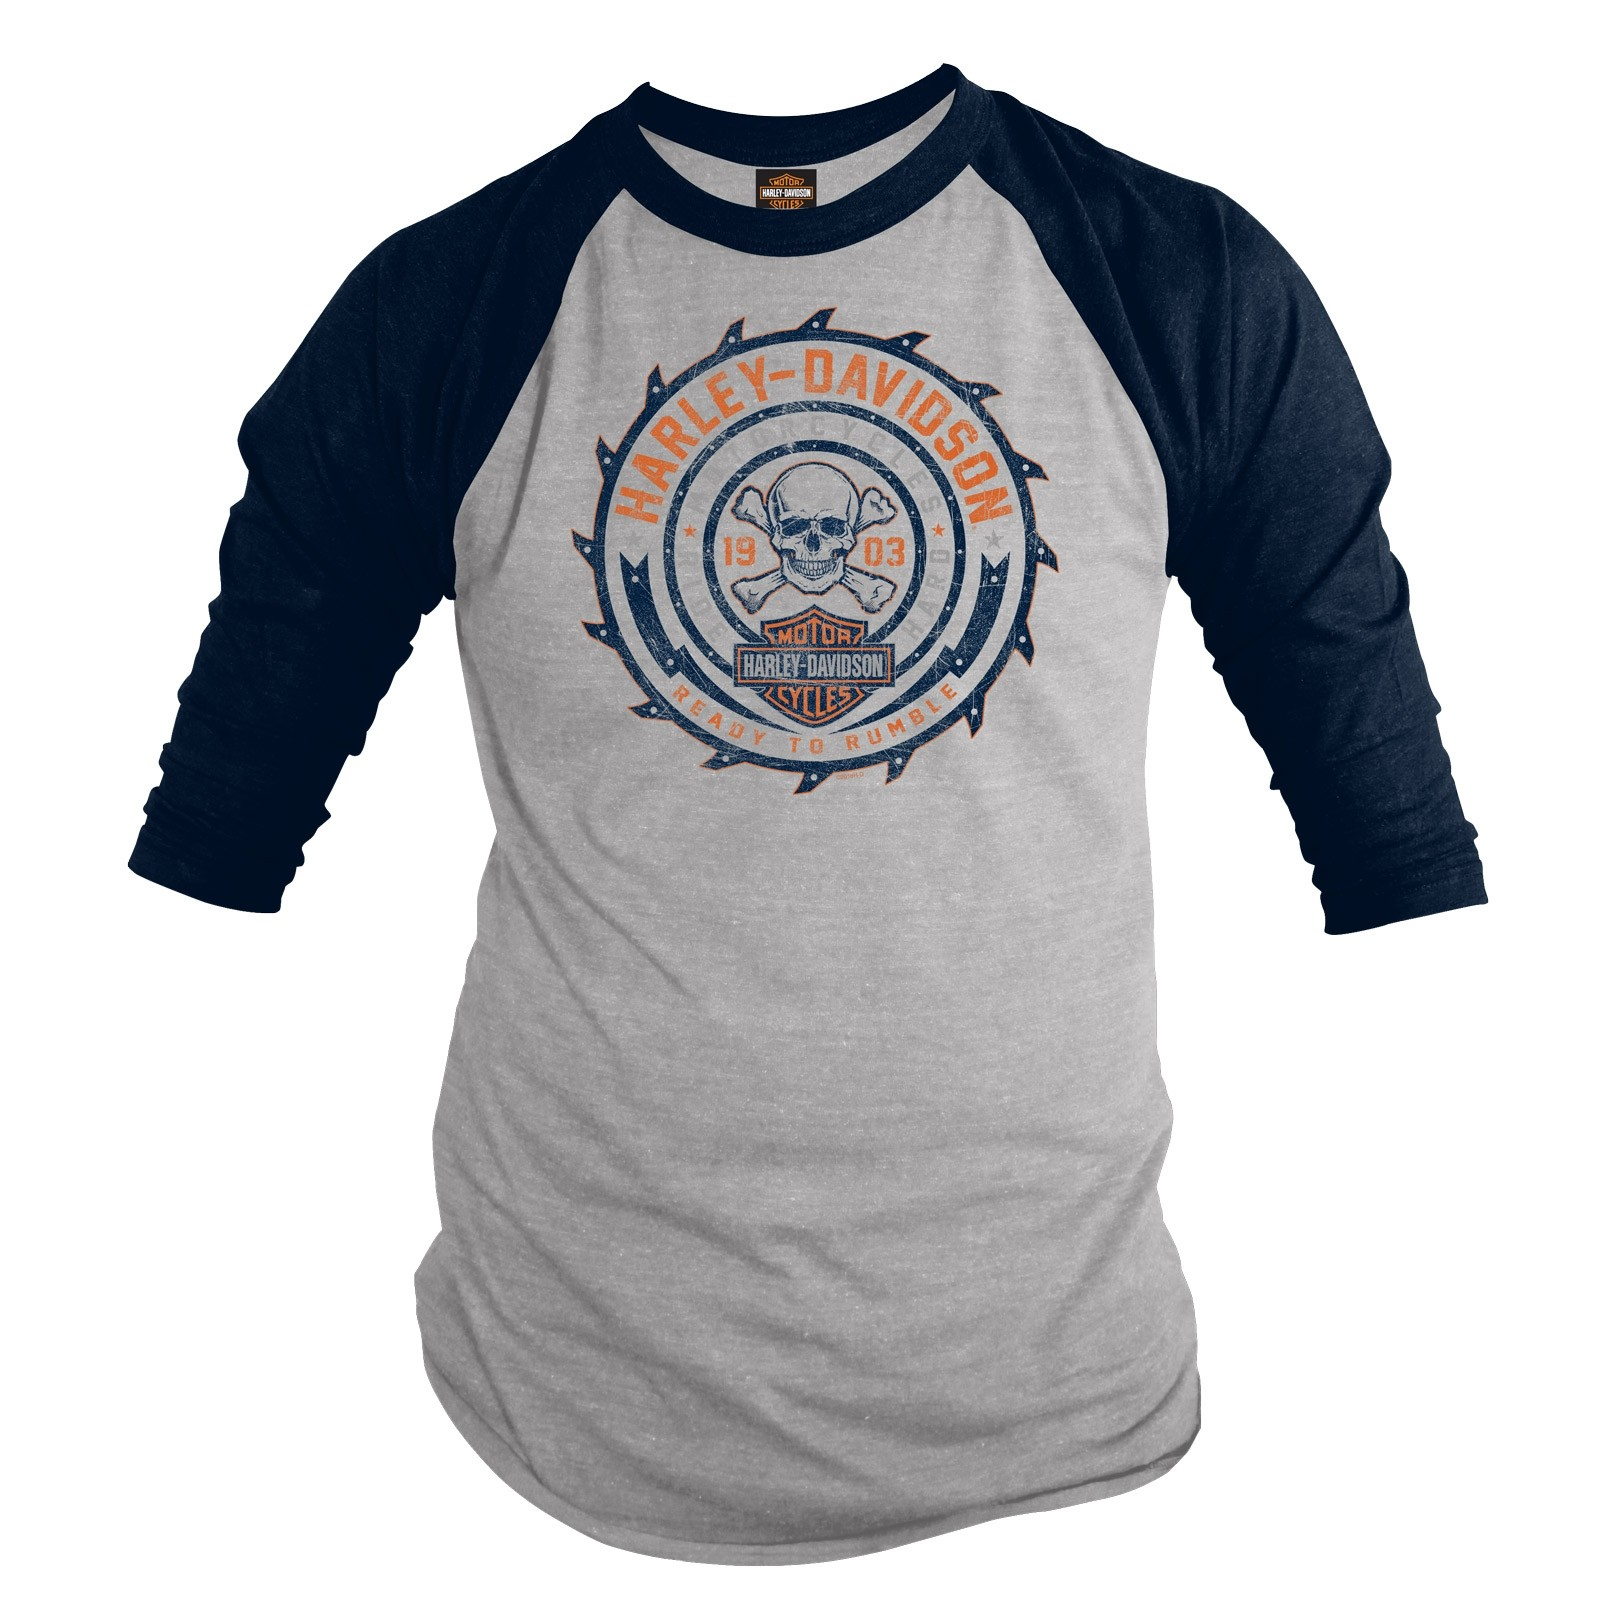 Harley-Davidson Men's 3/4 Sleeve Raglan Tee - NAS Sigonella | Ready To Rumble